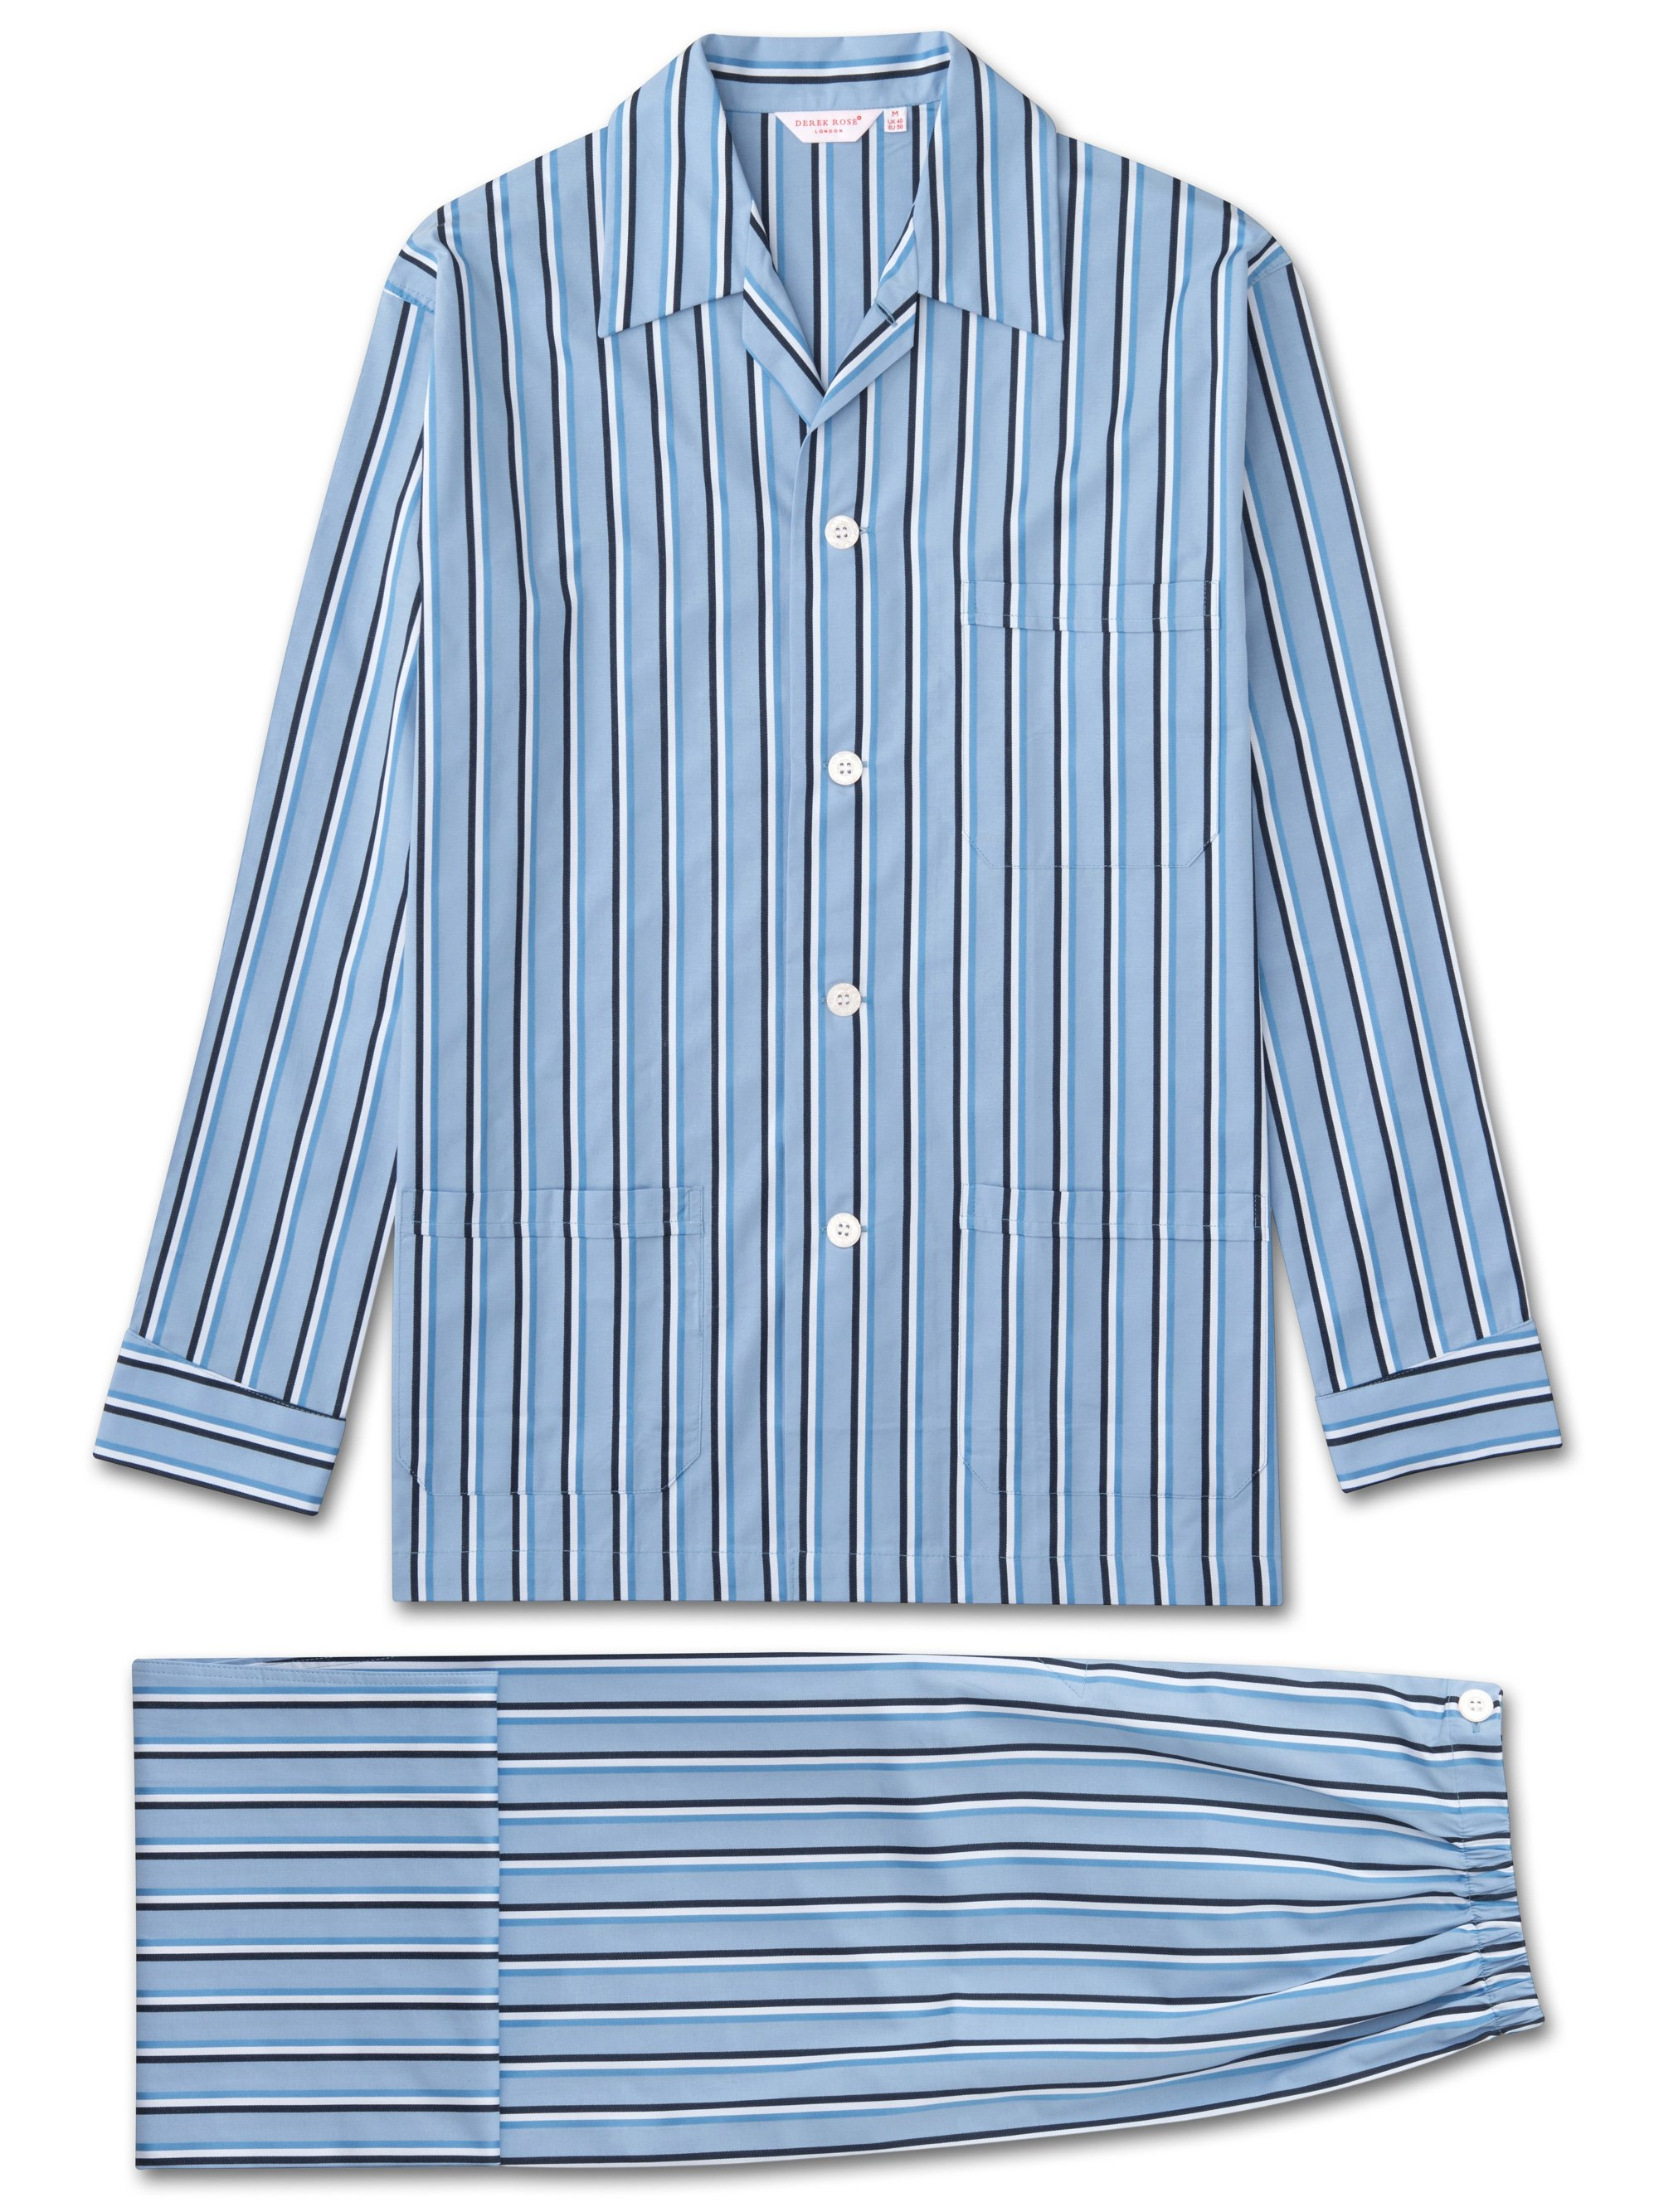 Derek Rose Men's Classic Fit Pyjamas — Mayfair 70 Cotton Satin Stripe Blue